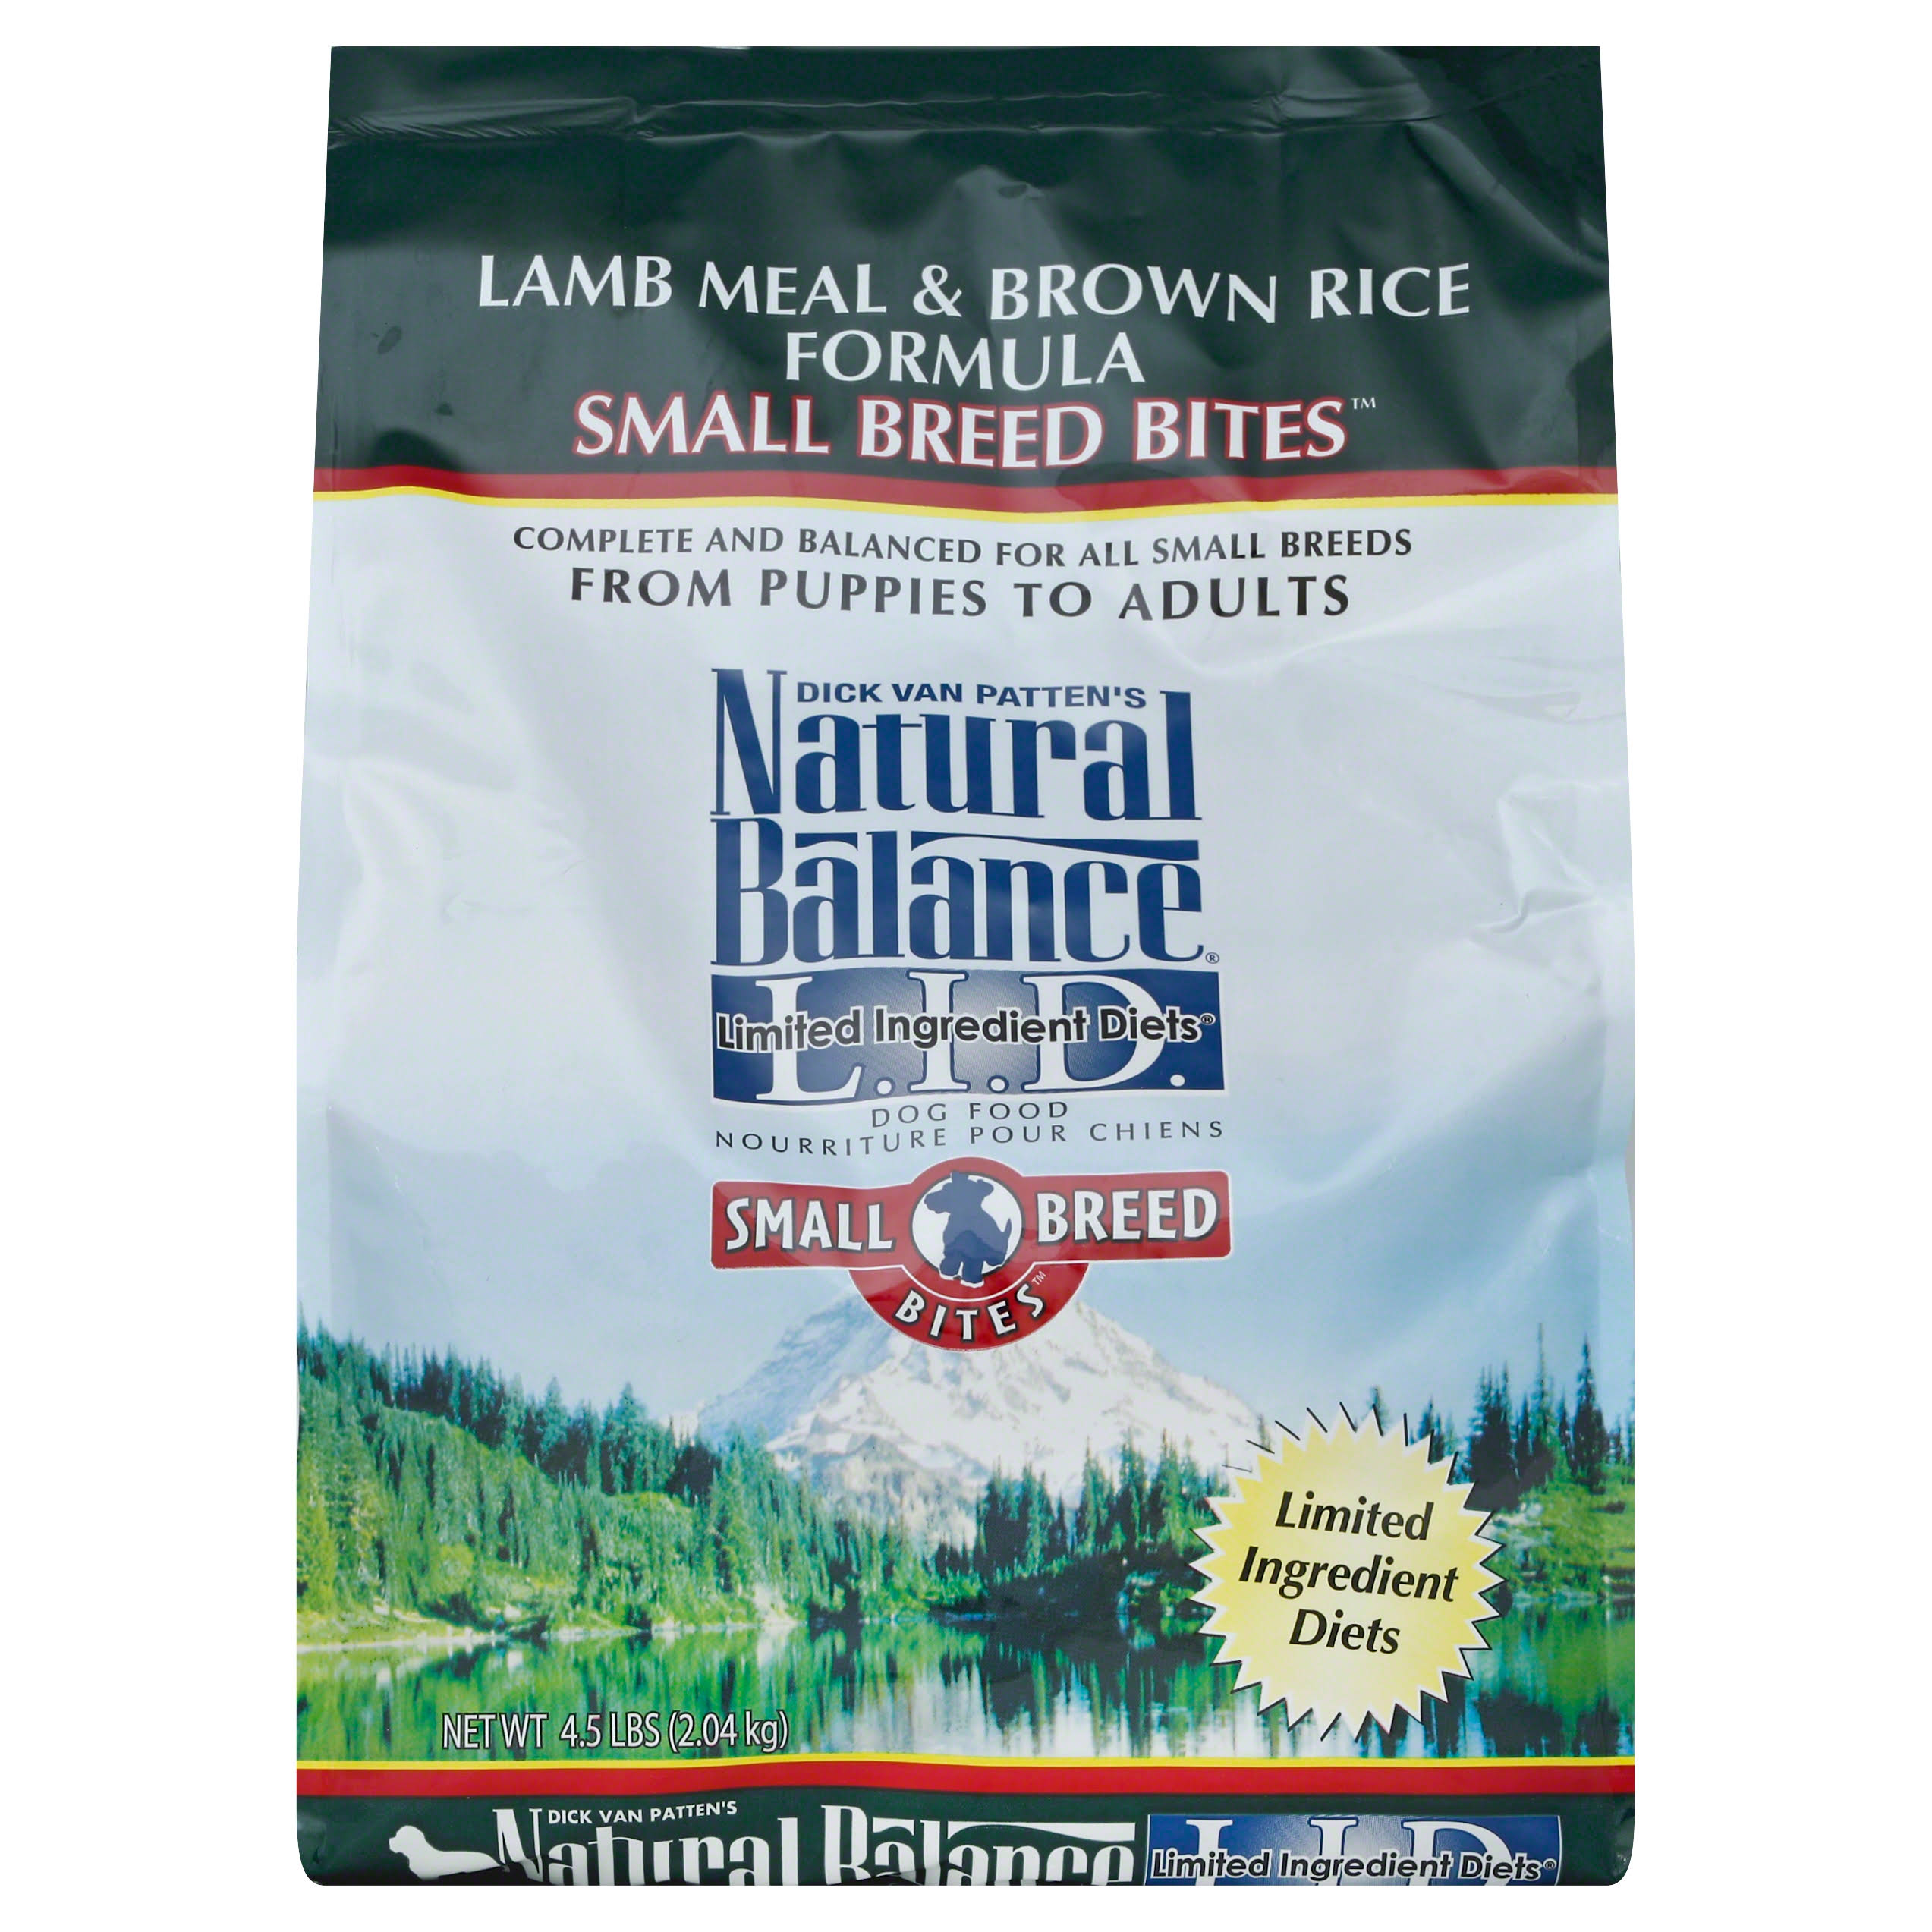 Natural Dry Balance Small Breed Bites L.I.D. Limited Ingredient Diets Lamb Meal